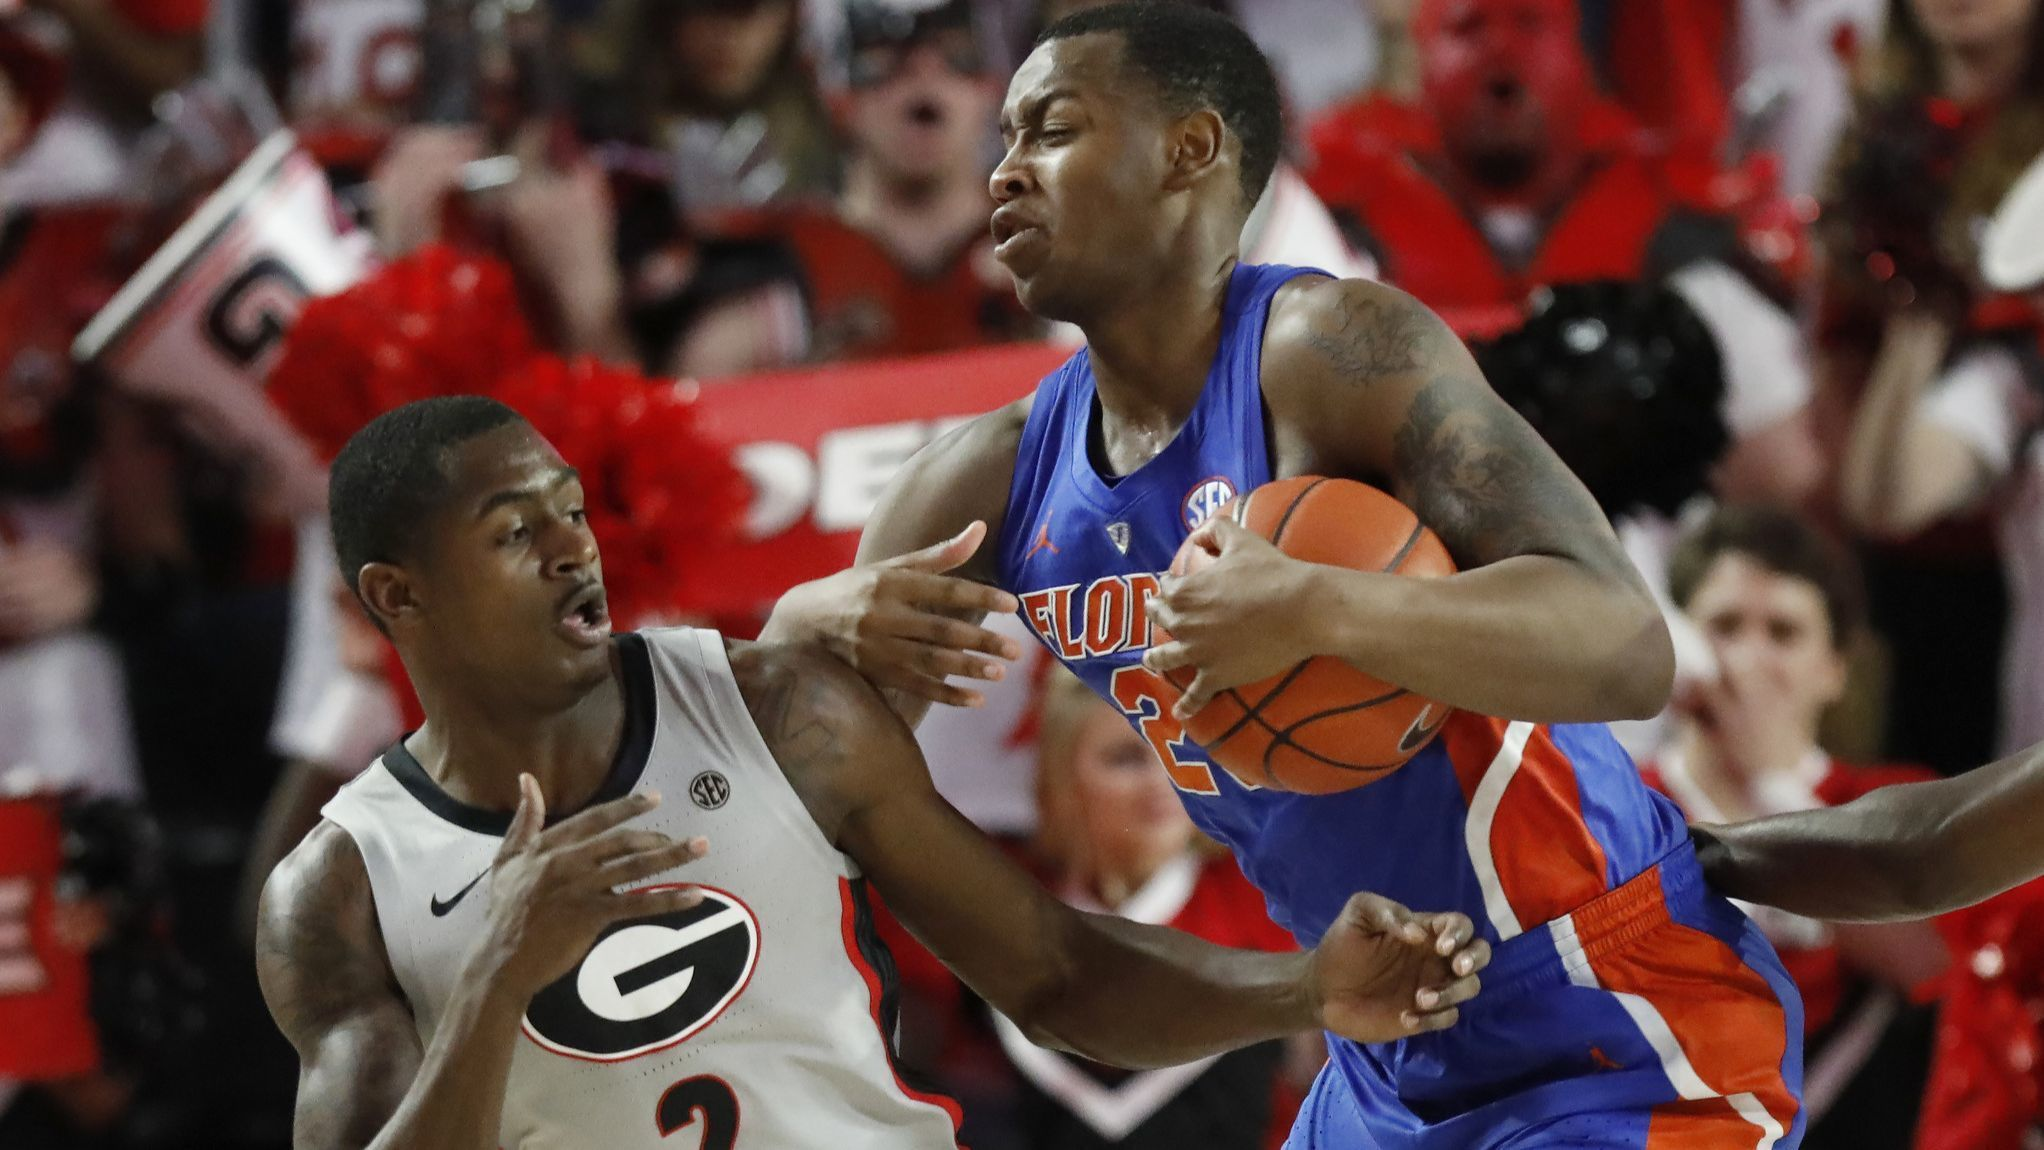 Former UF forward Keith Stone transferring to Miami